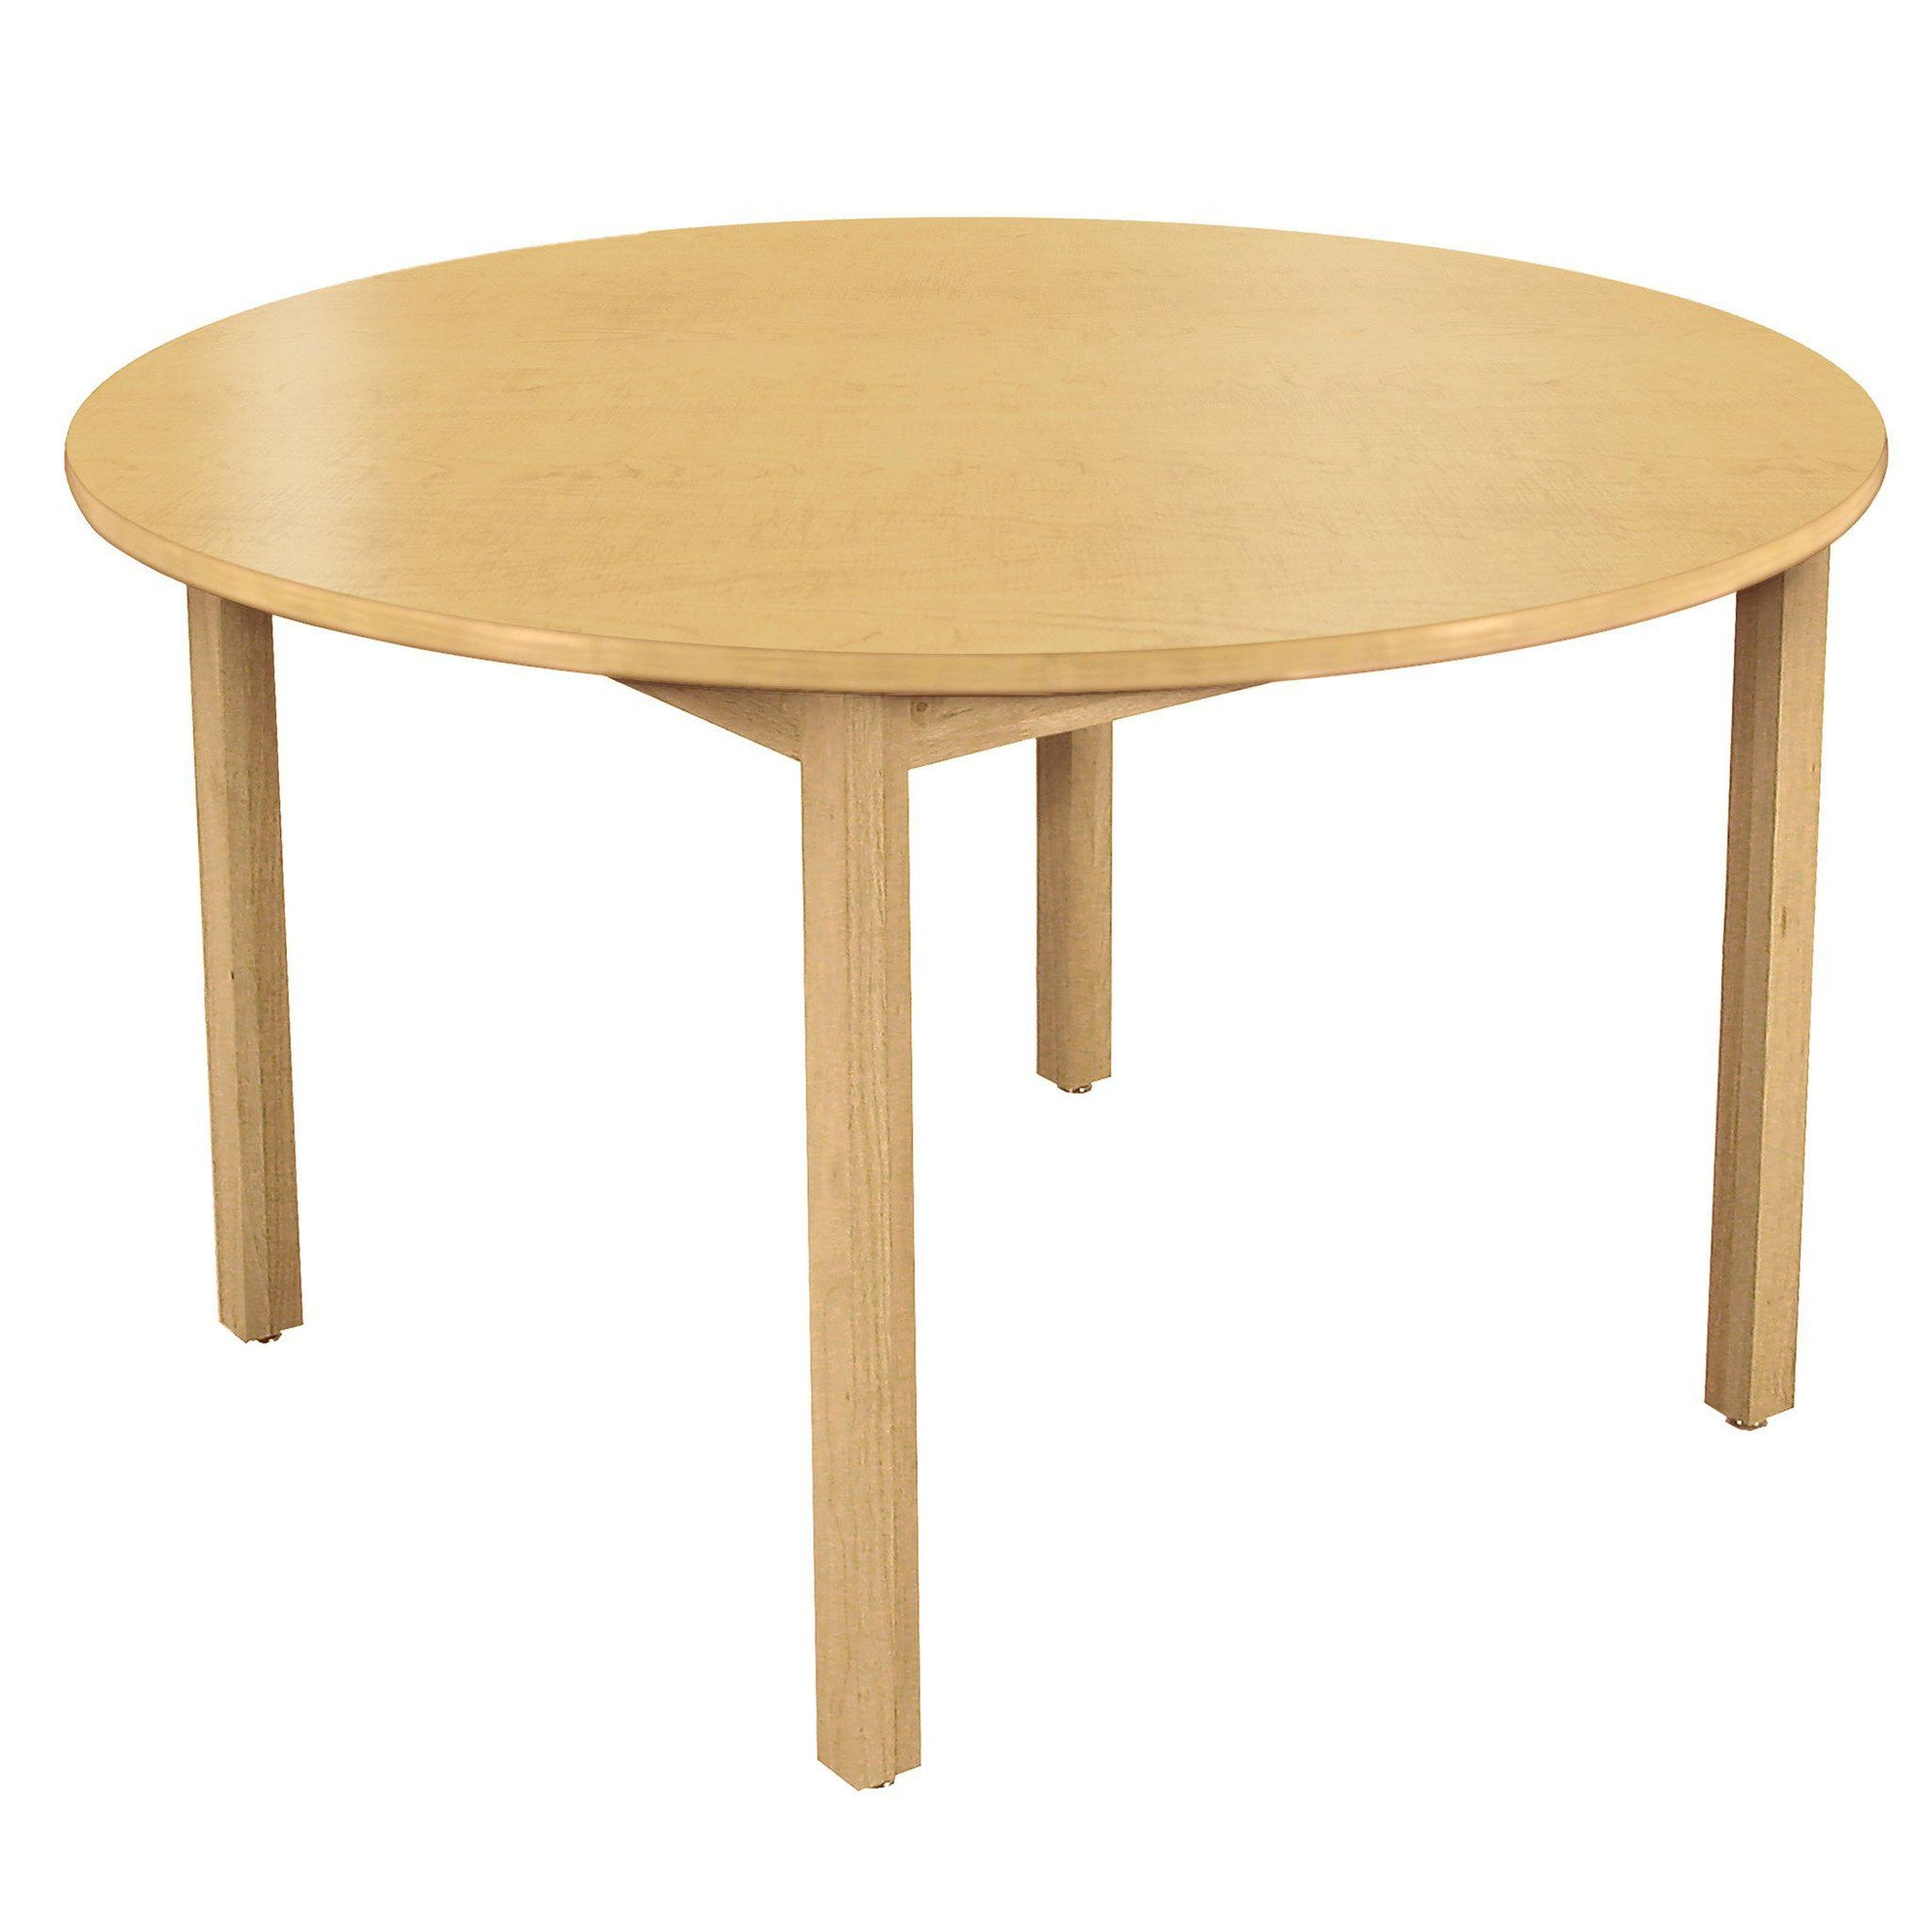 "LB Series Round Wood Library Table with High-Pressure Laminate Top, 48"" Round"